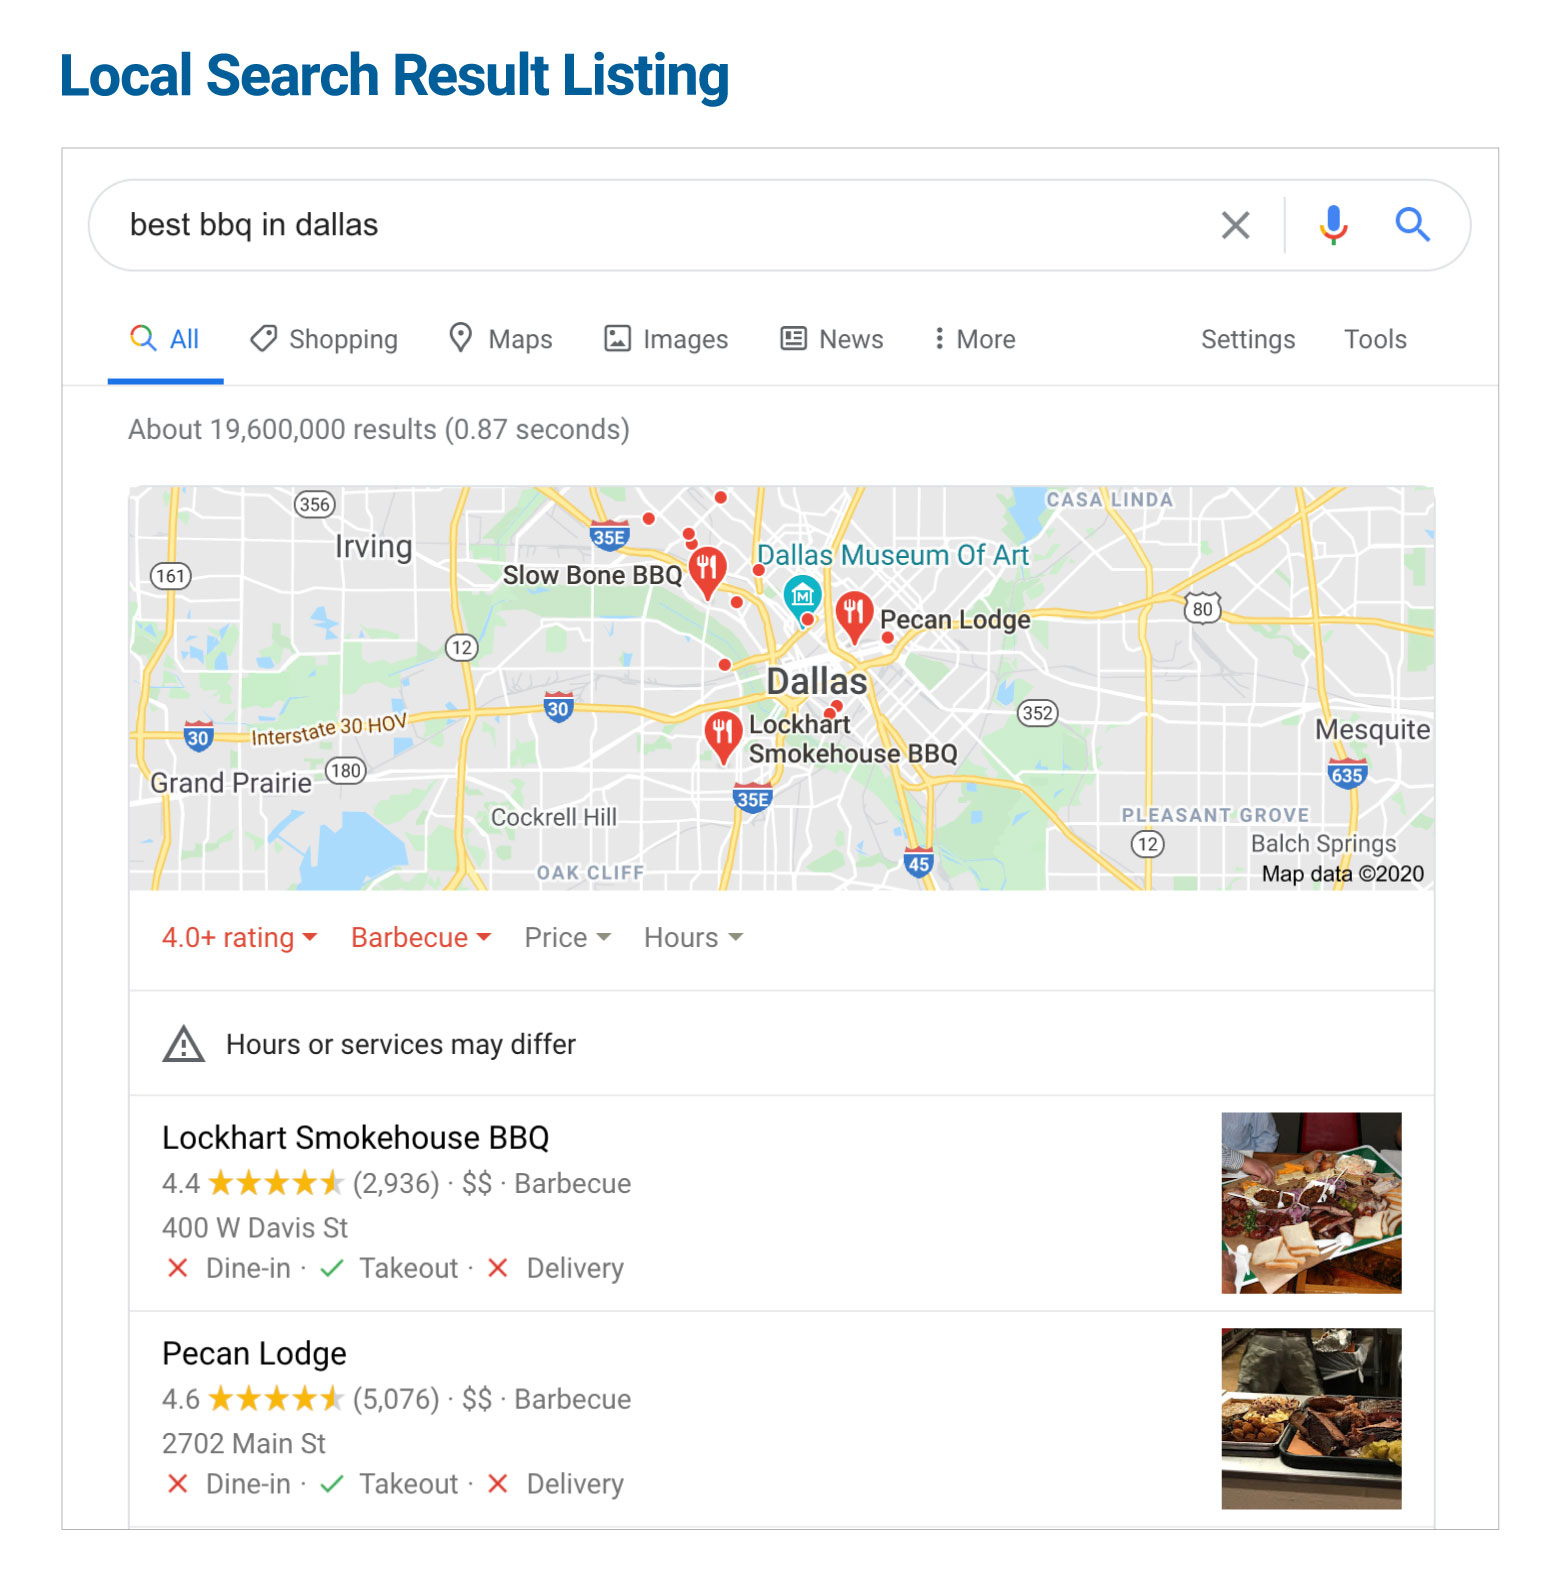 Local Search Result Listing